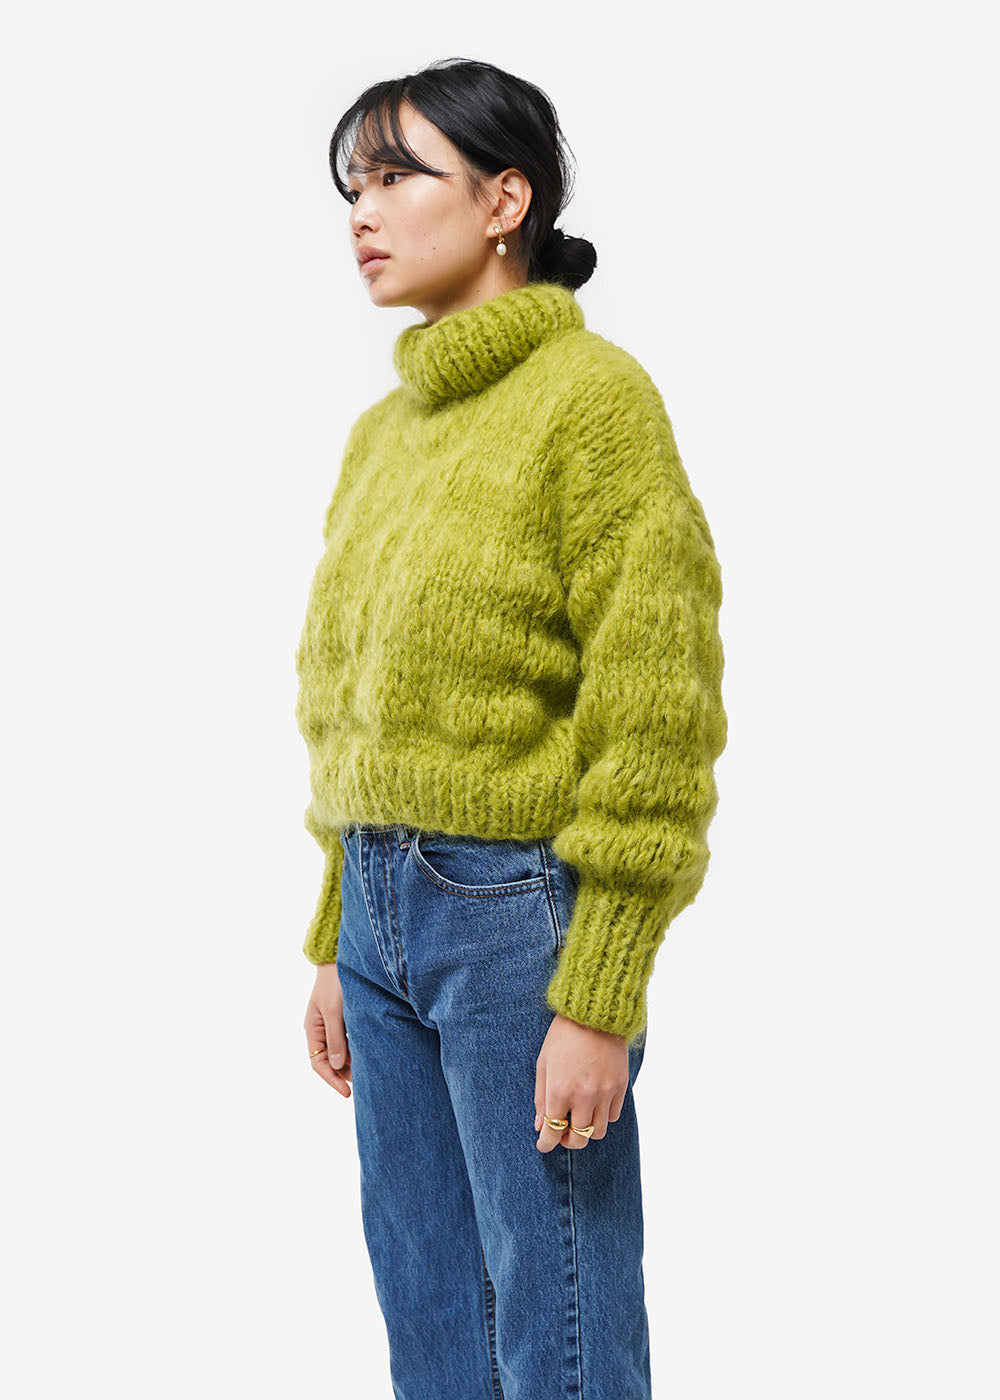 Frisson Knits Chartreuse Isabella Sweater — Shop sustainable fashion and slow fashion at New Classics Studios